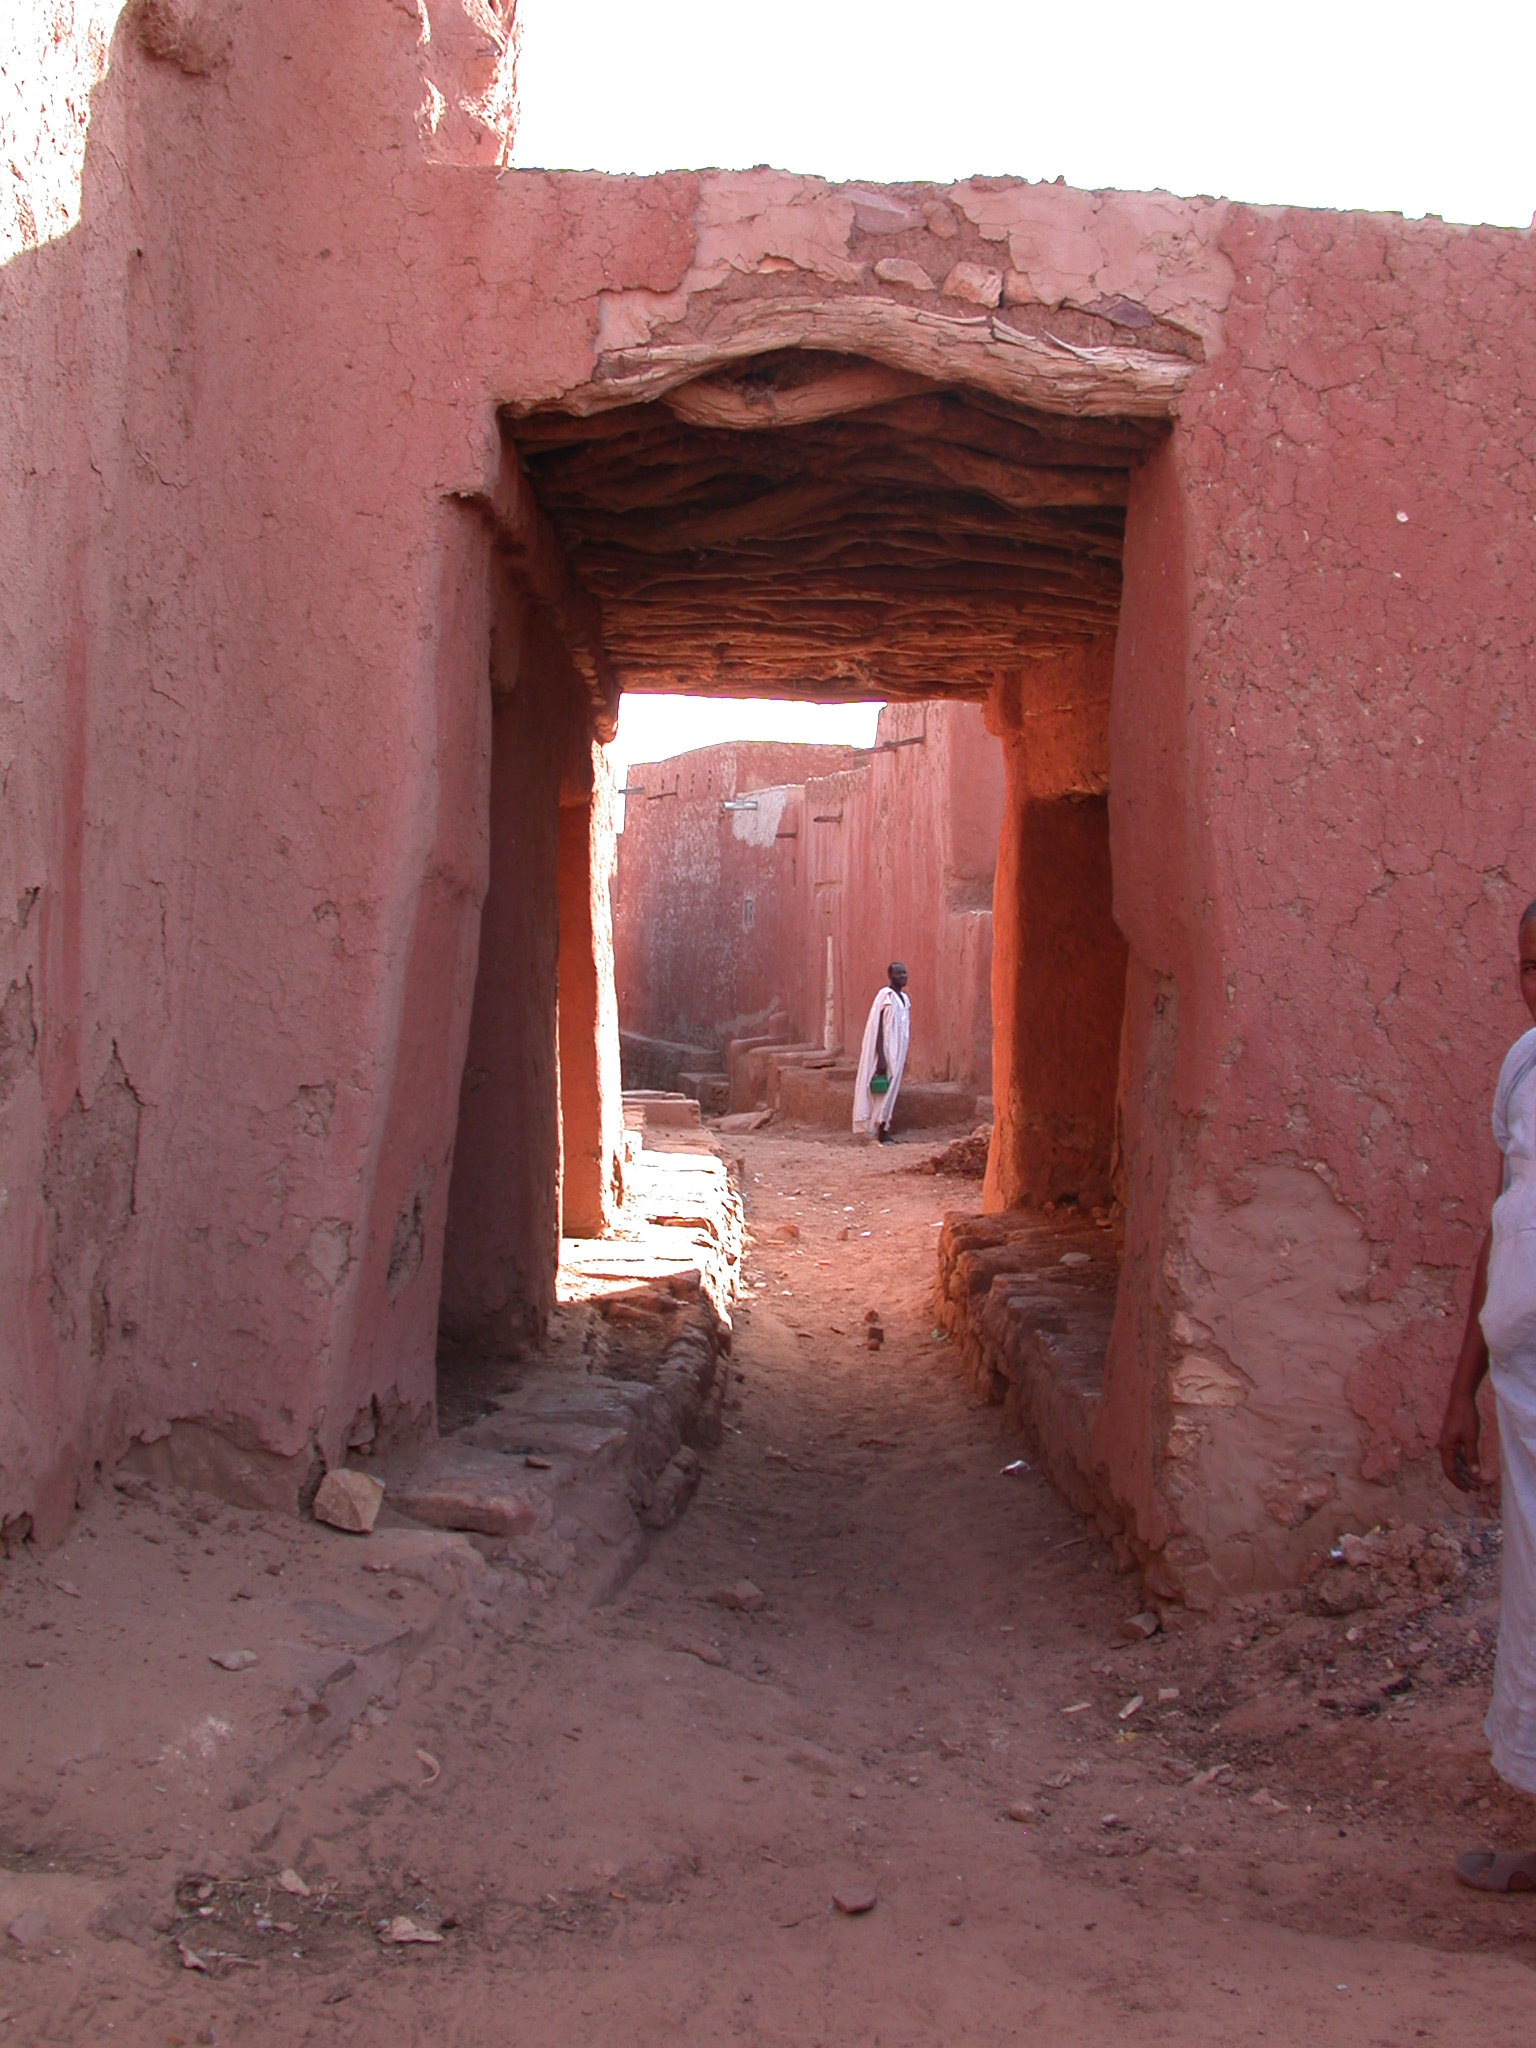 Hallway for Women in Ancient City of Oualata, Mauritania